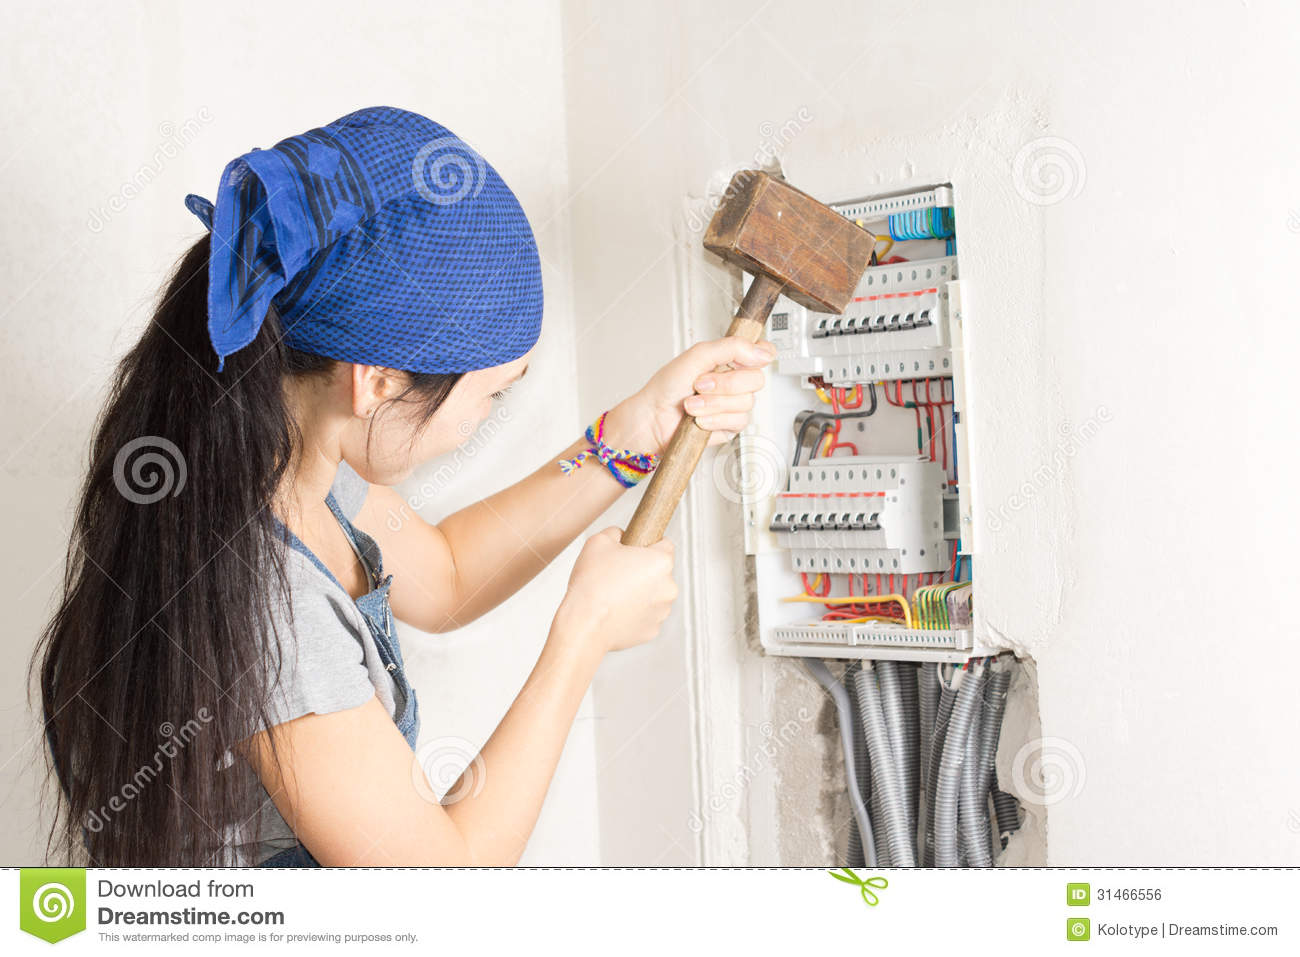 Woman taking aim at an electrical fuse box